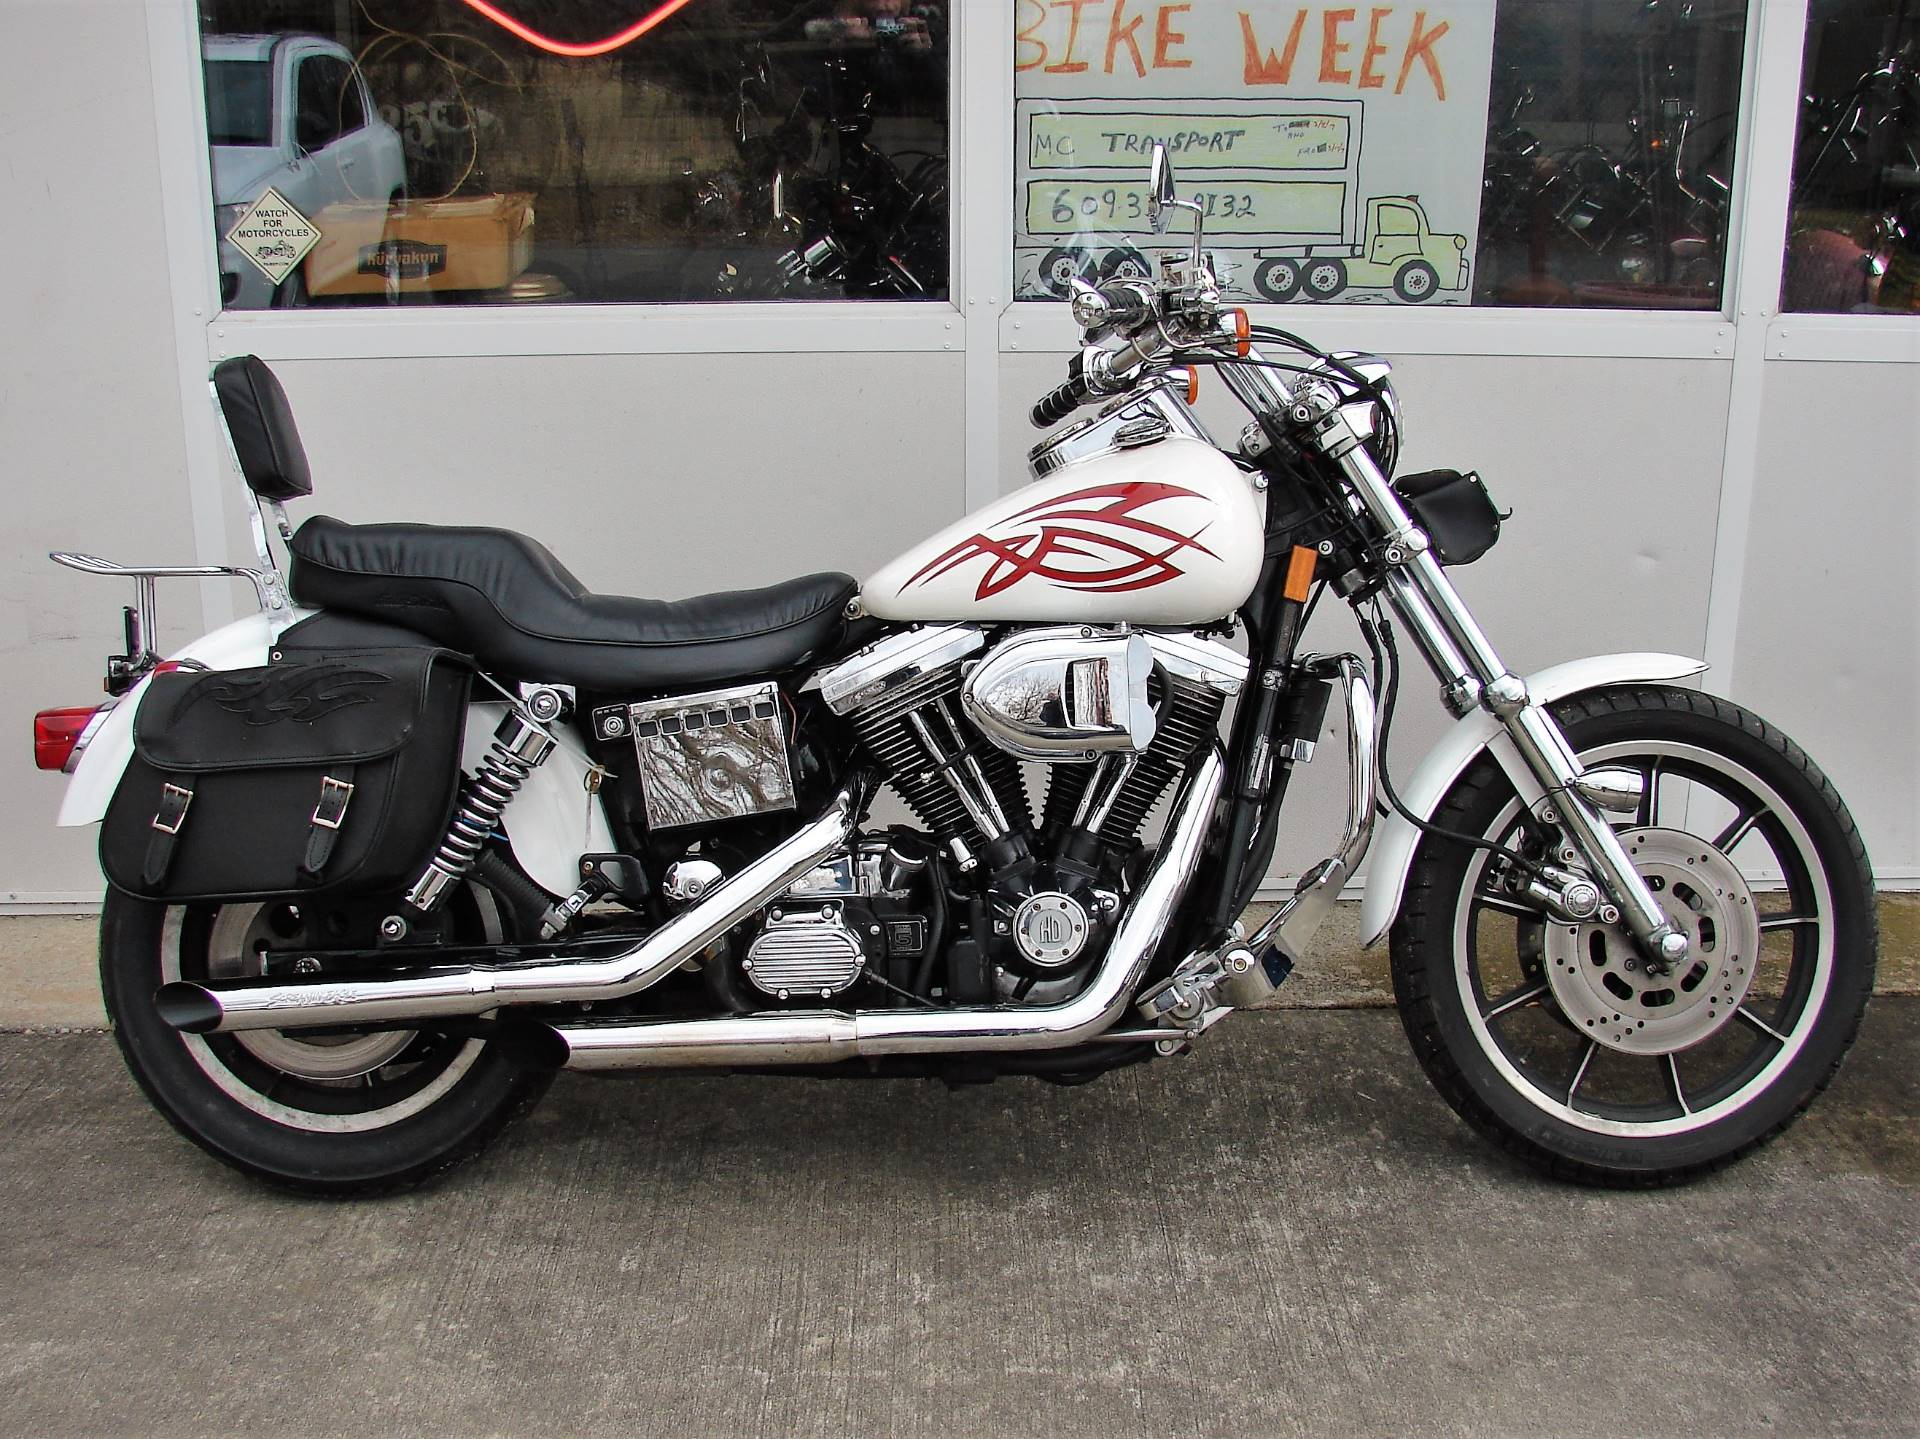 1995 Harley-Davidson Harley FXDL Dyna Low Rider  (White with Red Tribal) in Williamstown, New Jersey - Photo 1